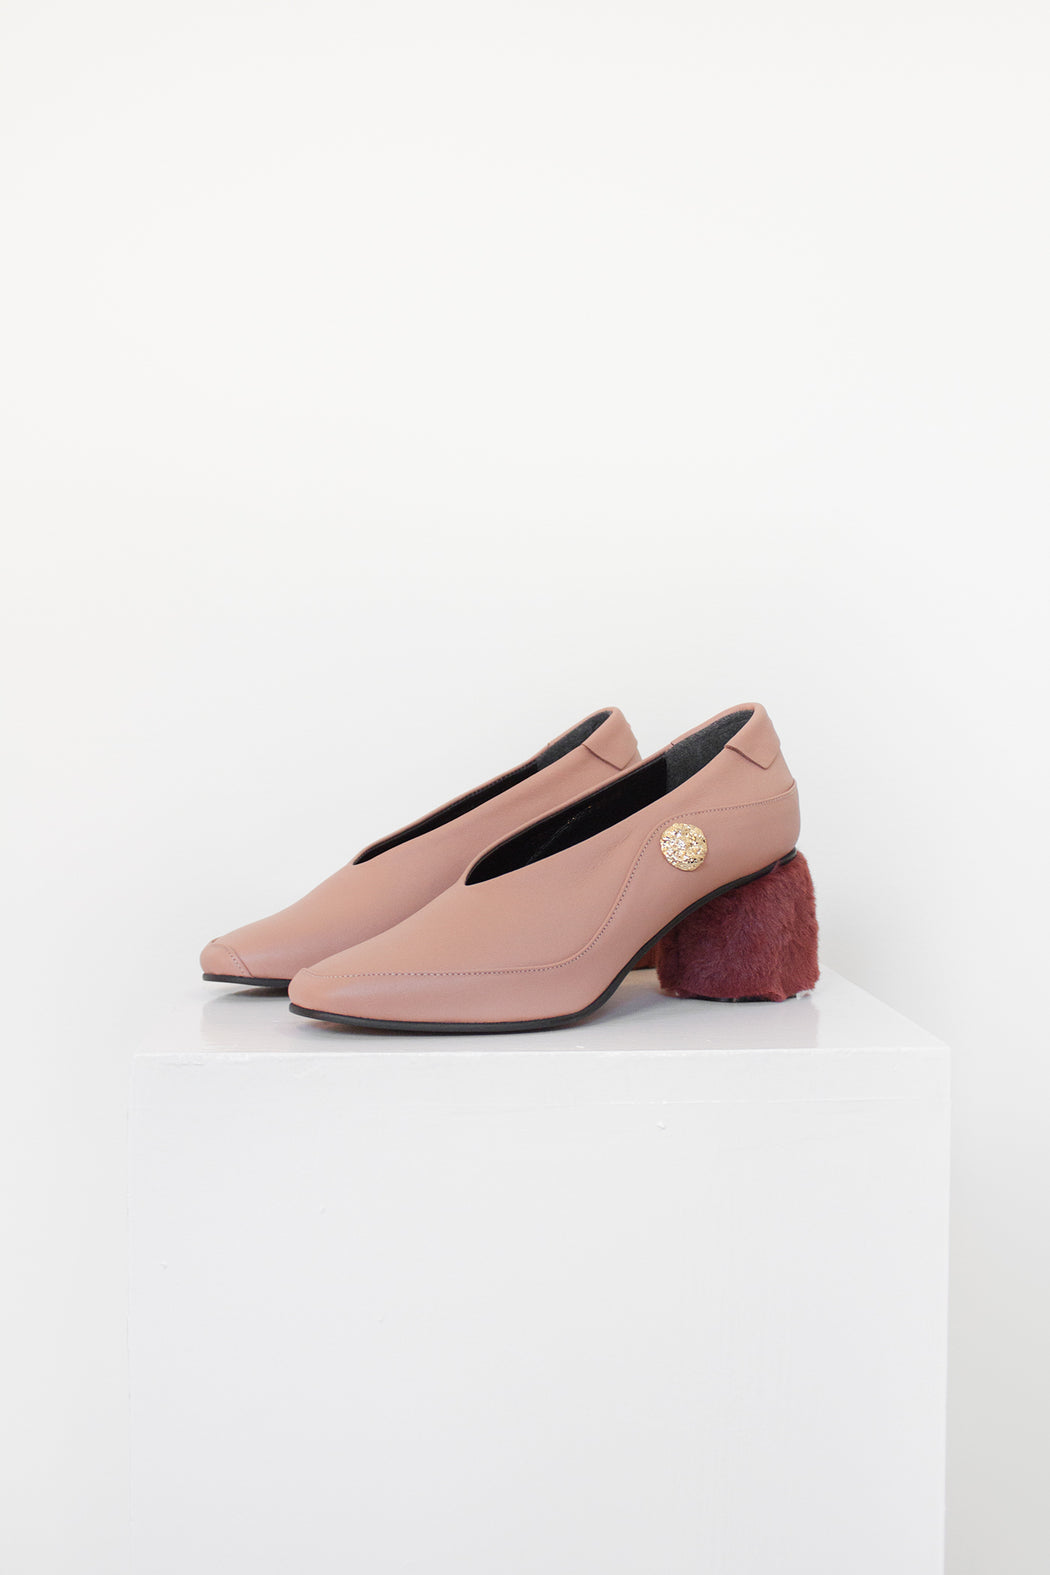 Reike Nen Shoes | Curved Pumps with faux fur heel | Hazel & Rose